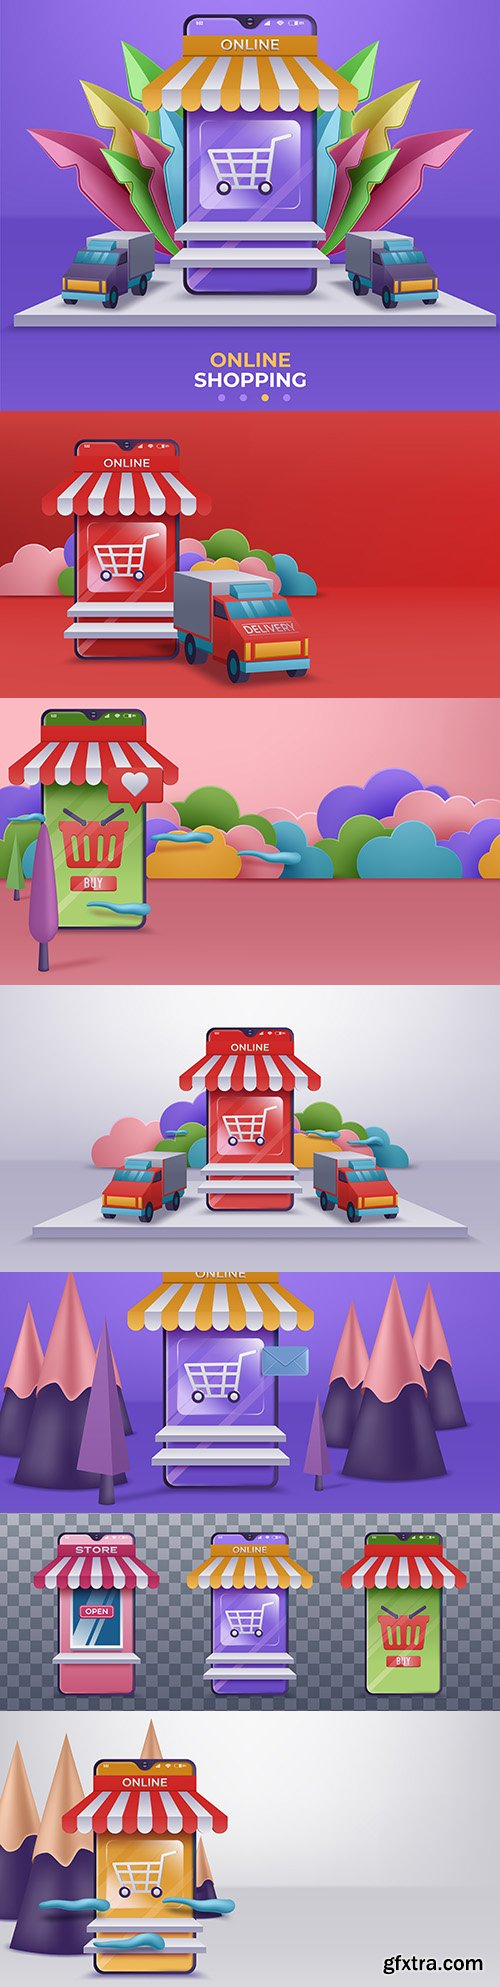 Online store and mobile application design 3d illustration